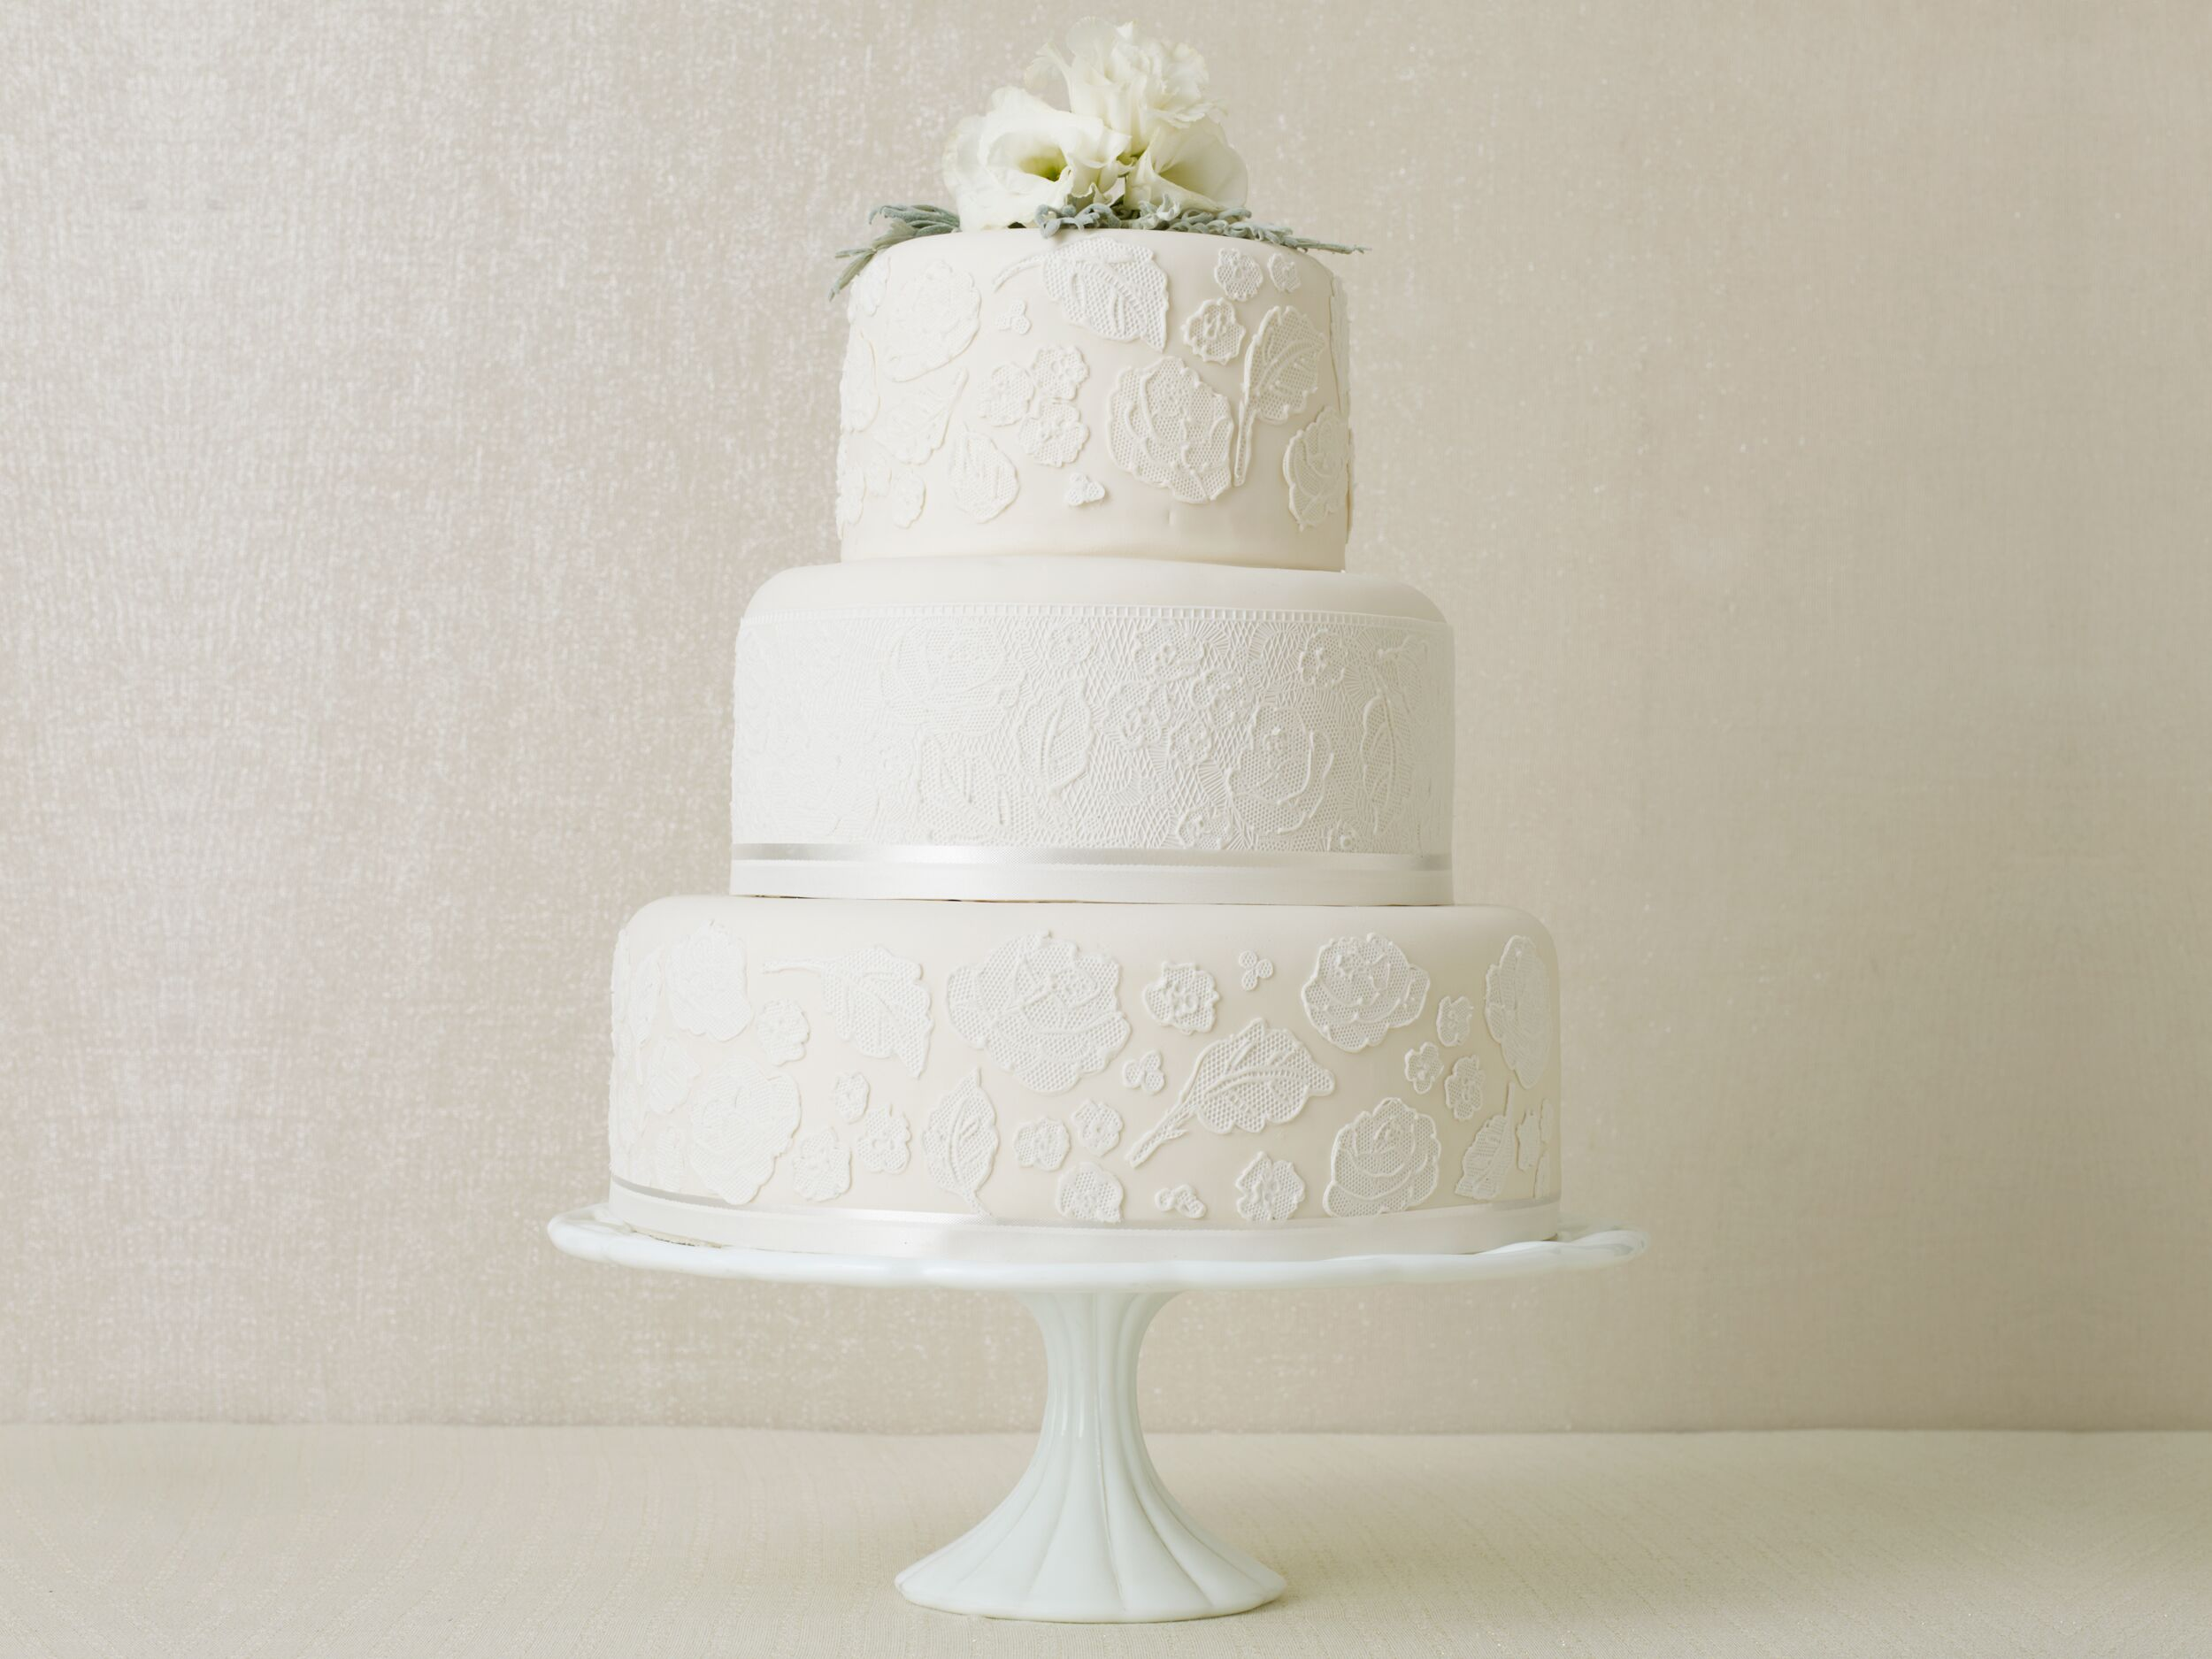 Winter Wedding Cakes - Real Weddings - Winter Weddings